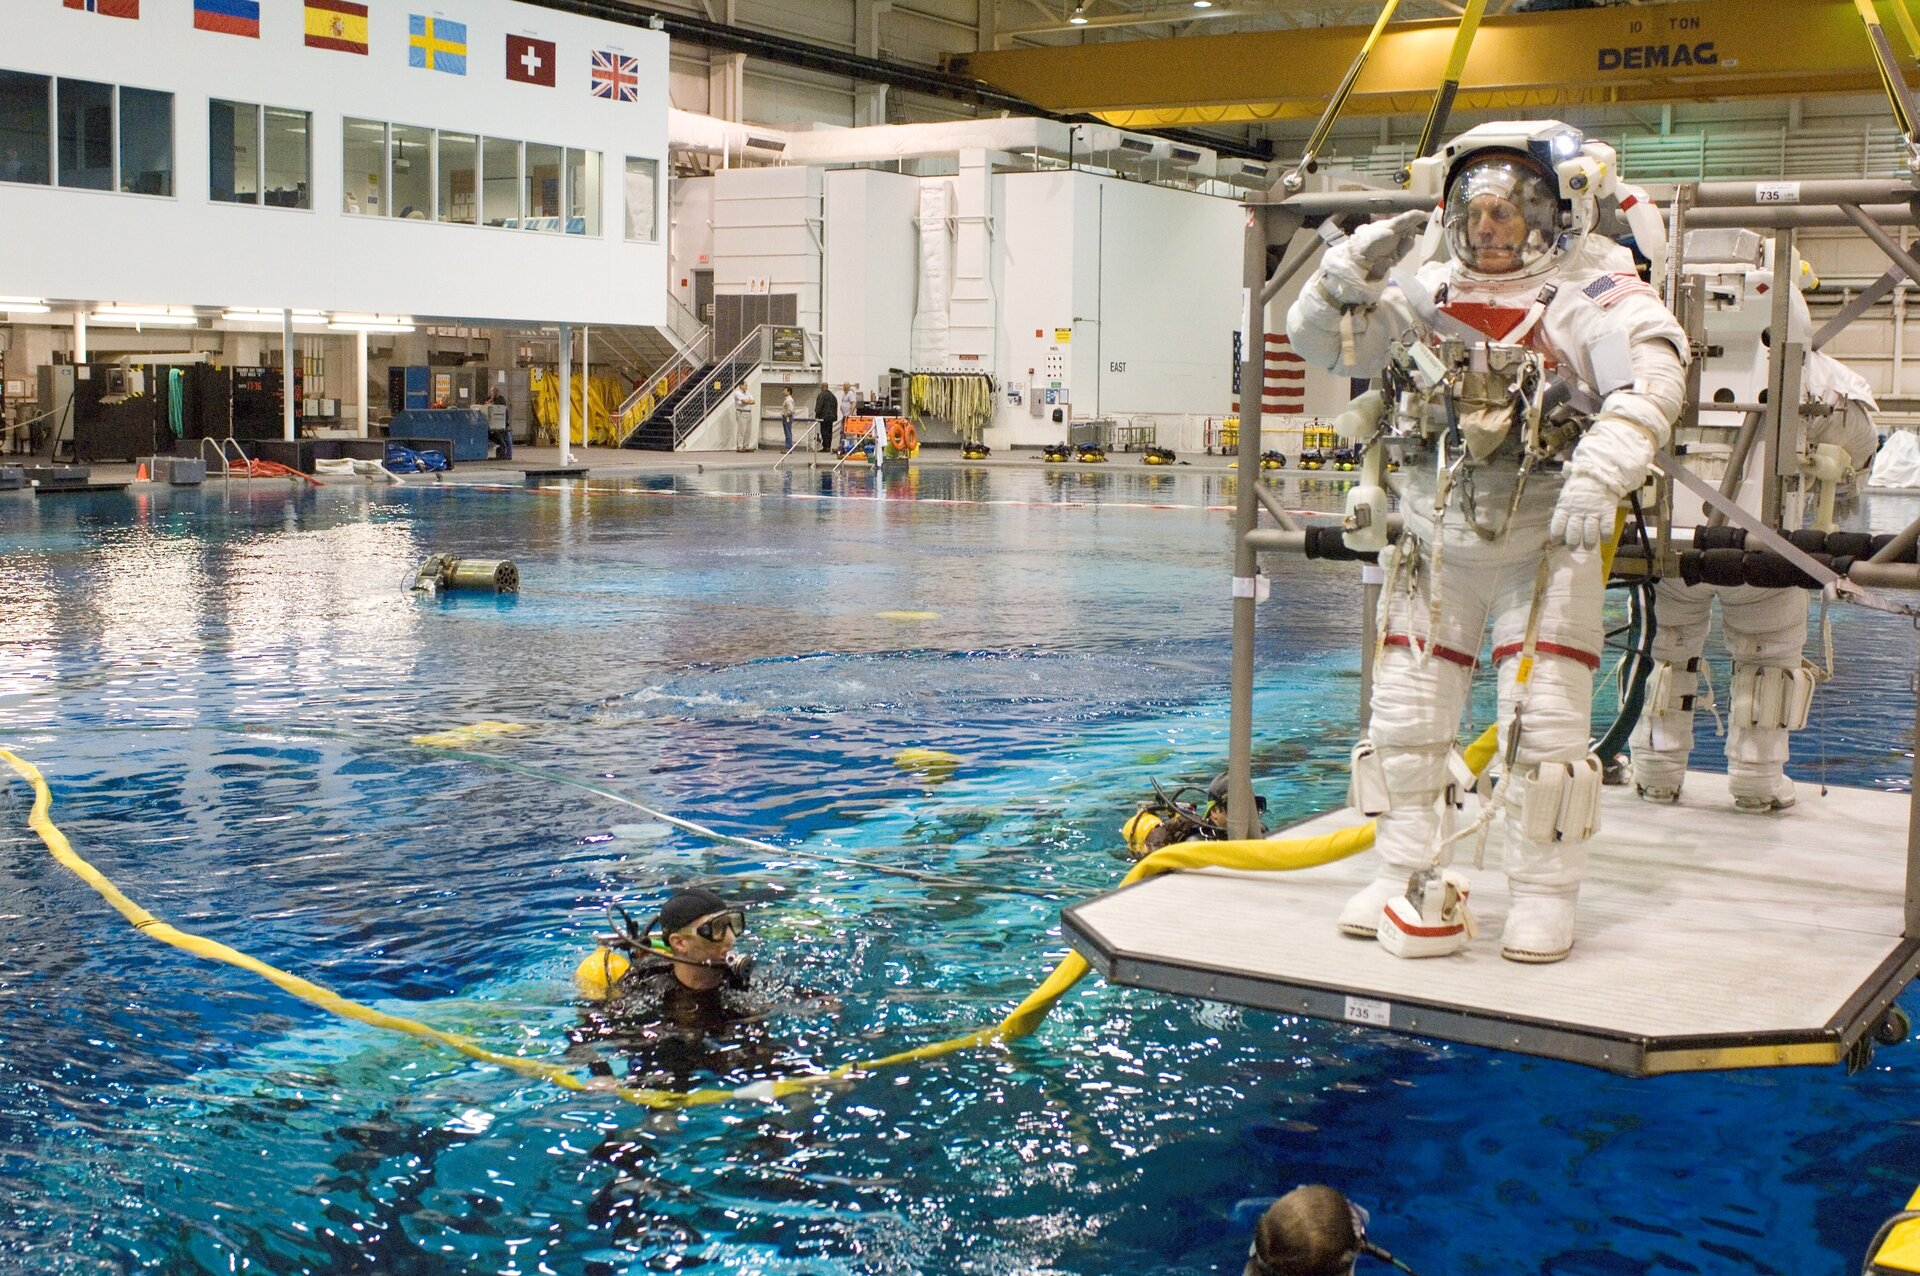 NASA's Neutral Buoyancy Laboratory in Houston